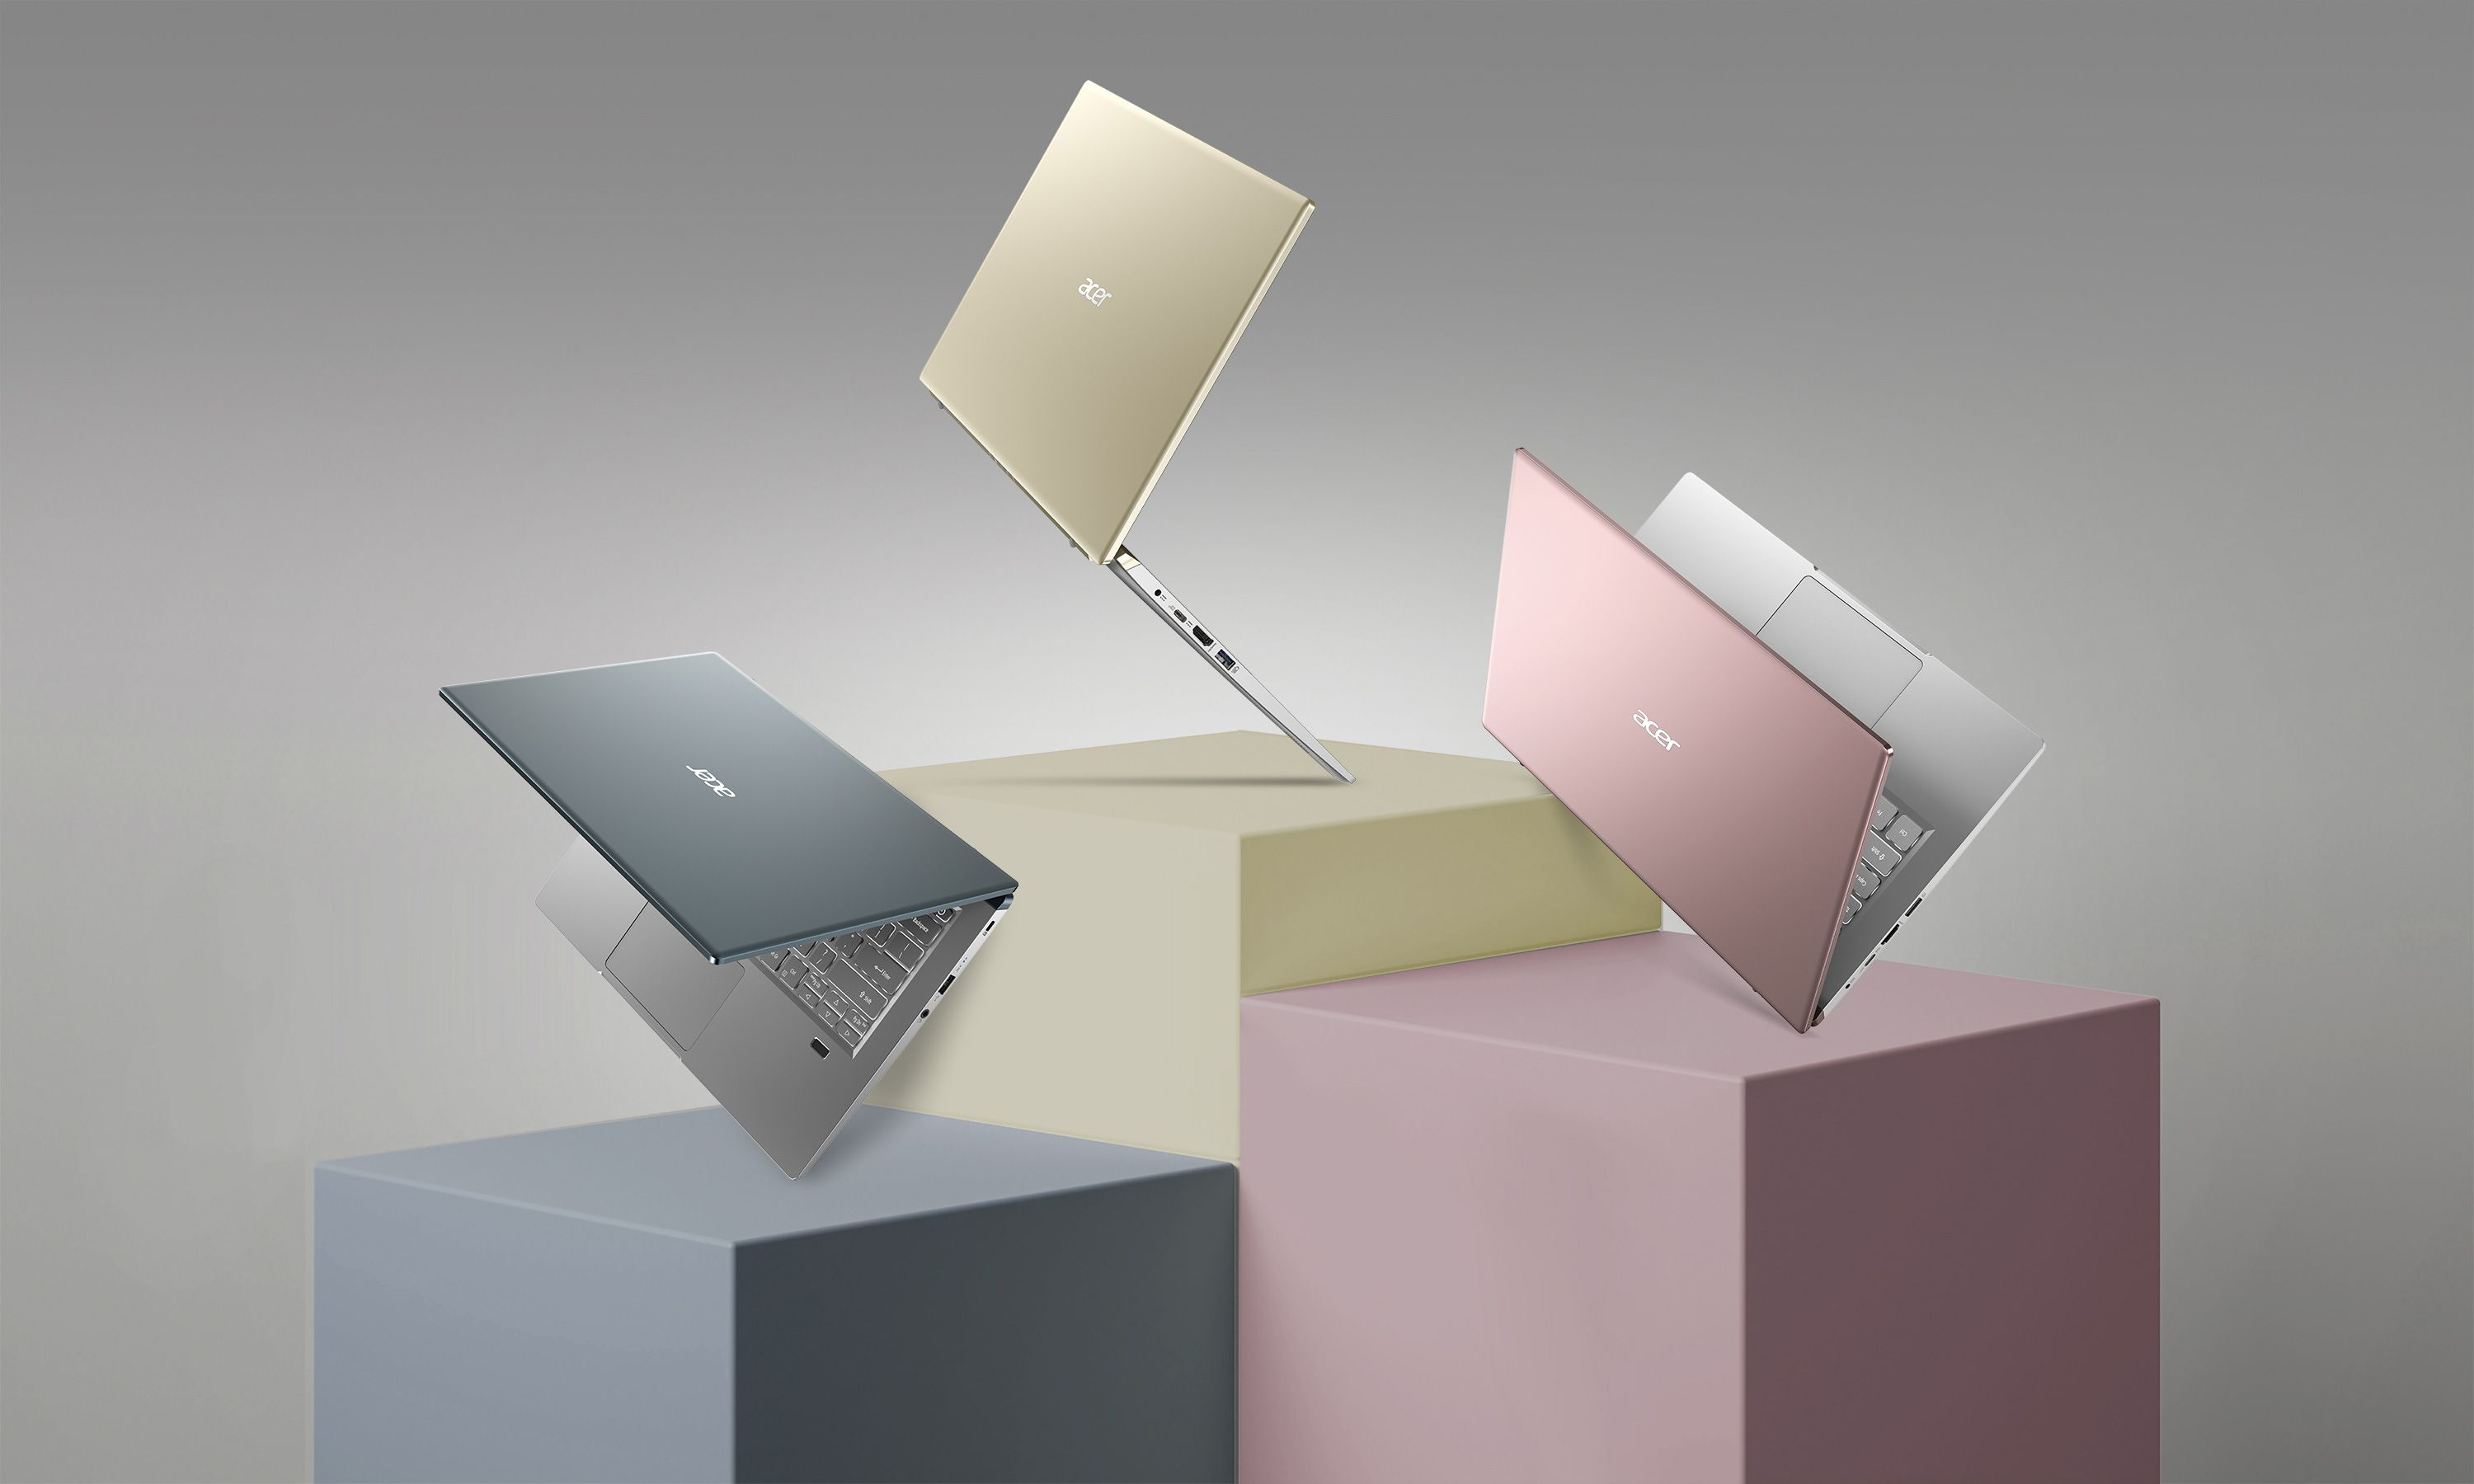 Acer Swift X in rose gold, gold, and grey